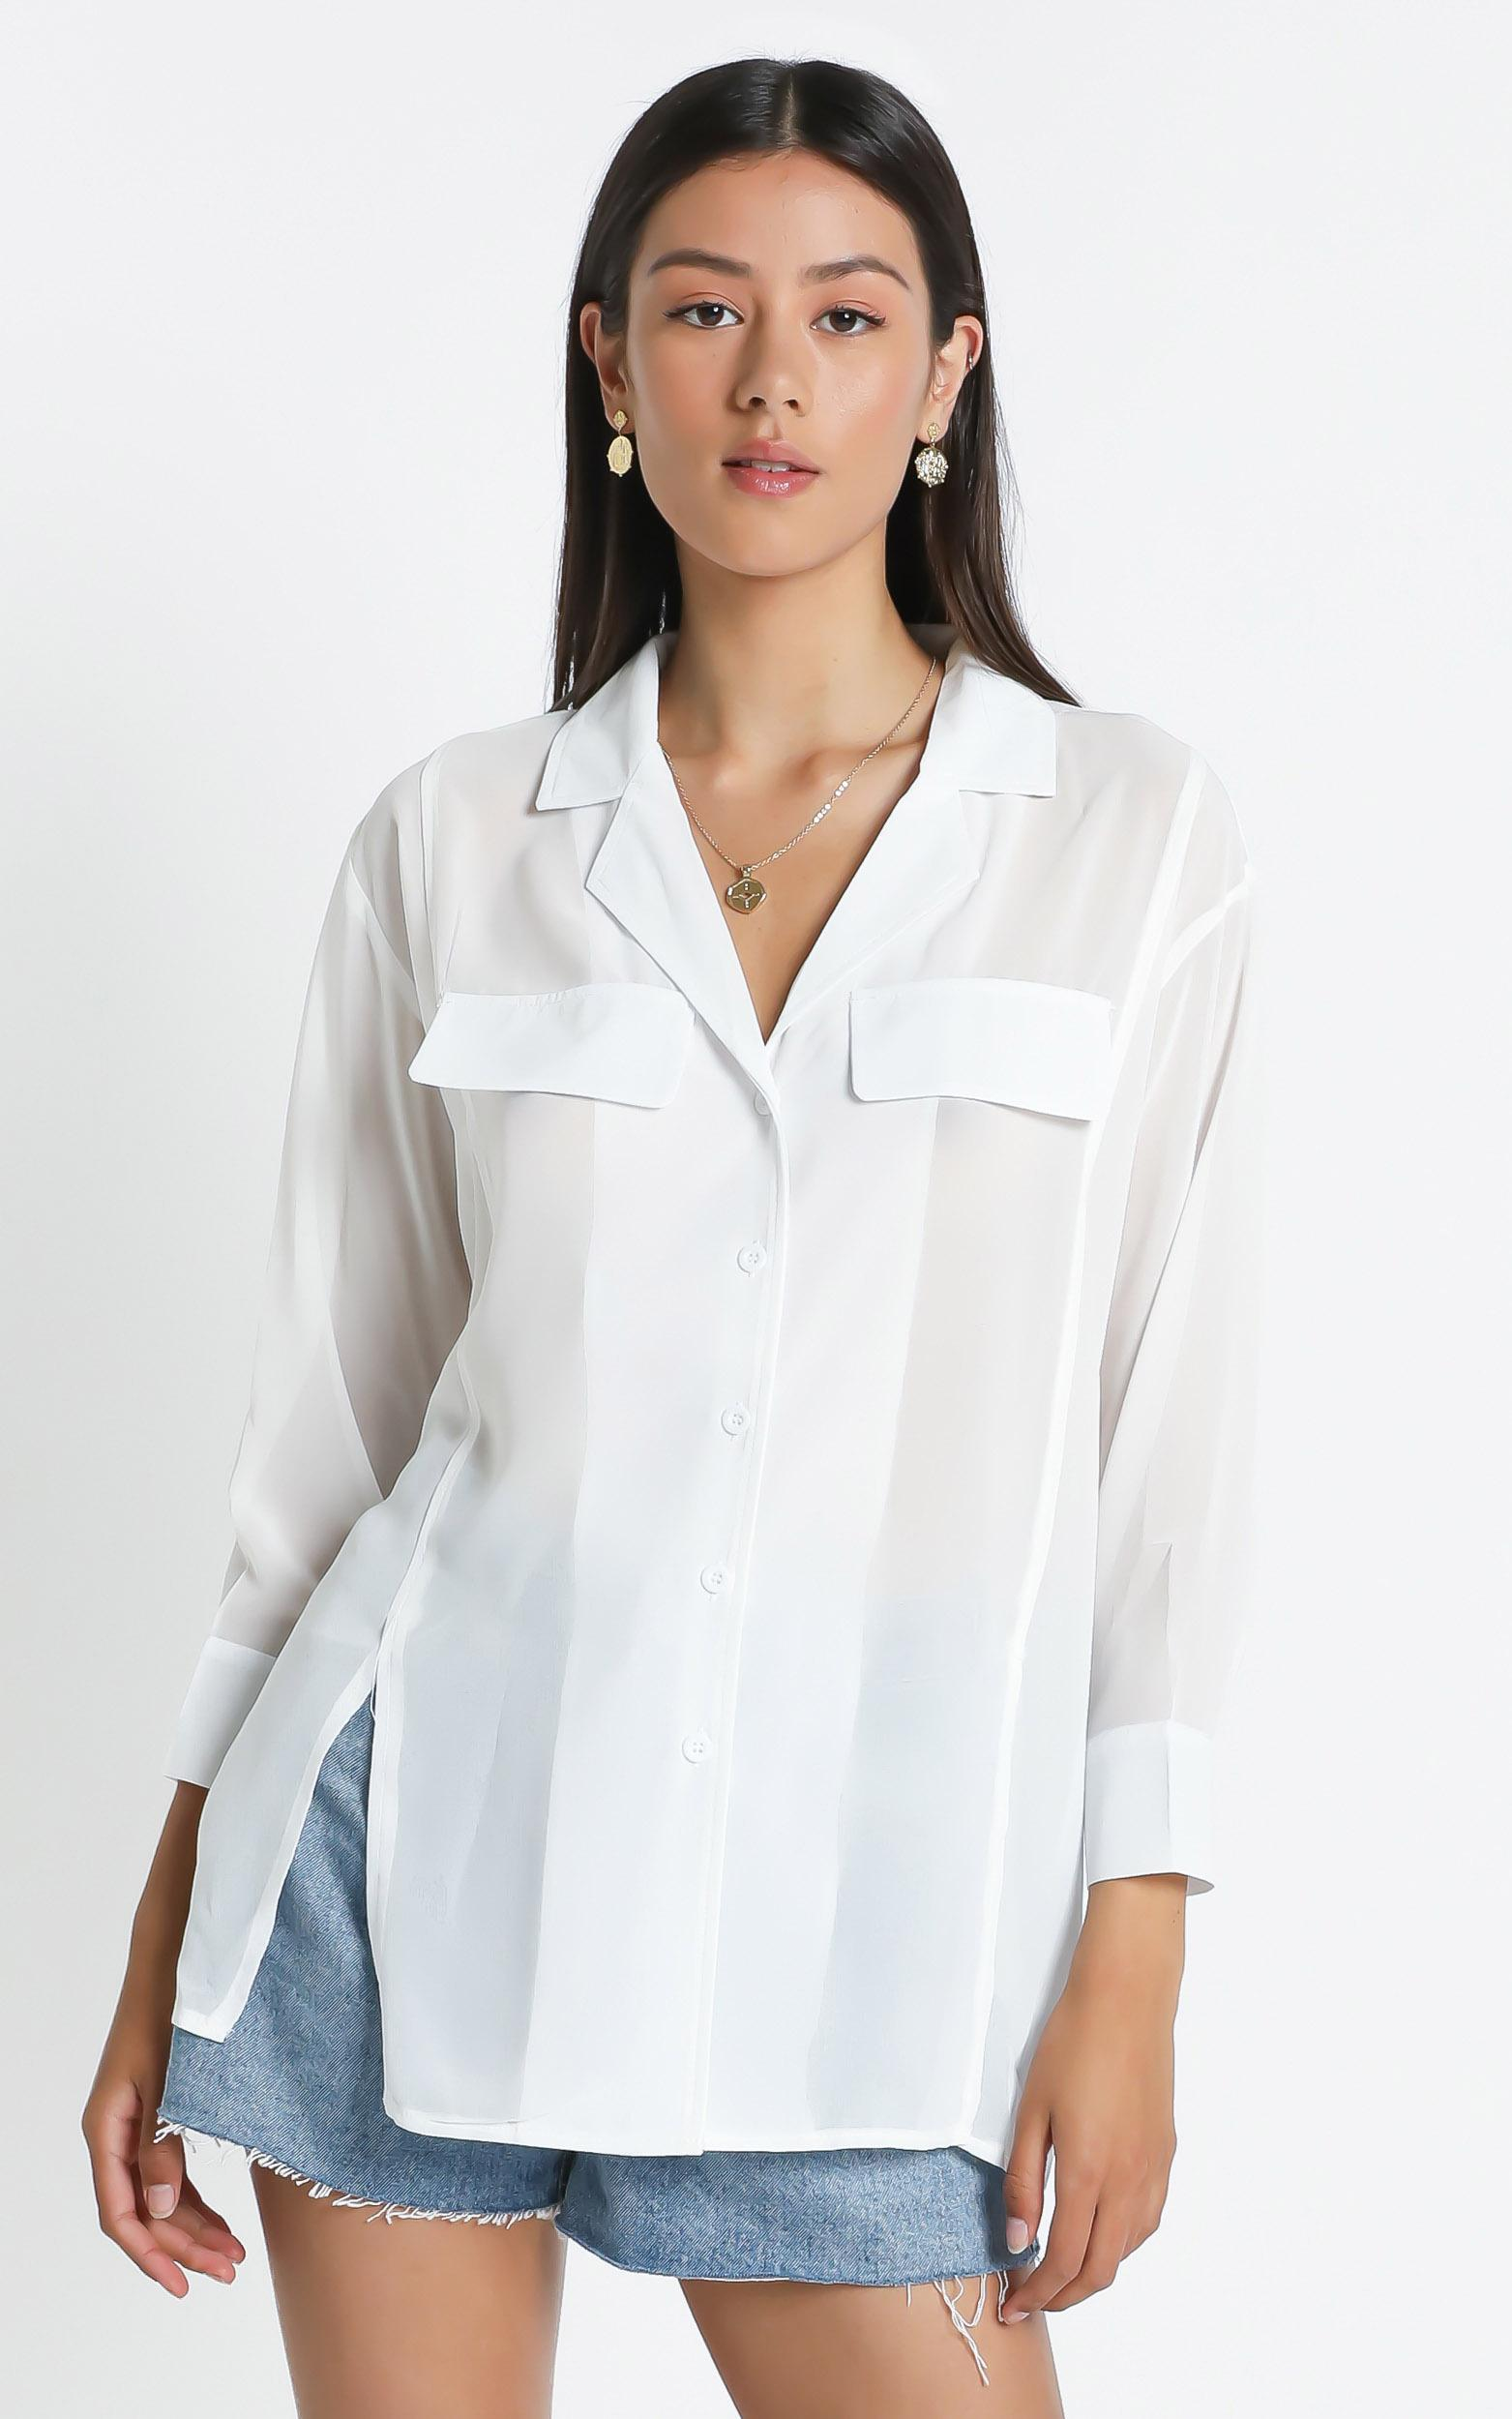 Gila Top in White - S/M, White, hi-res image number null